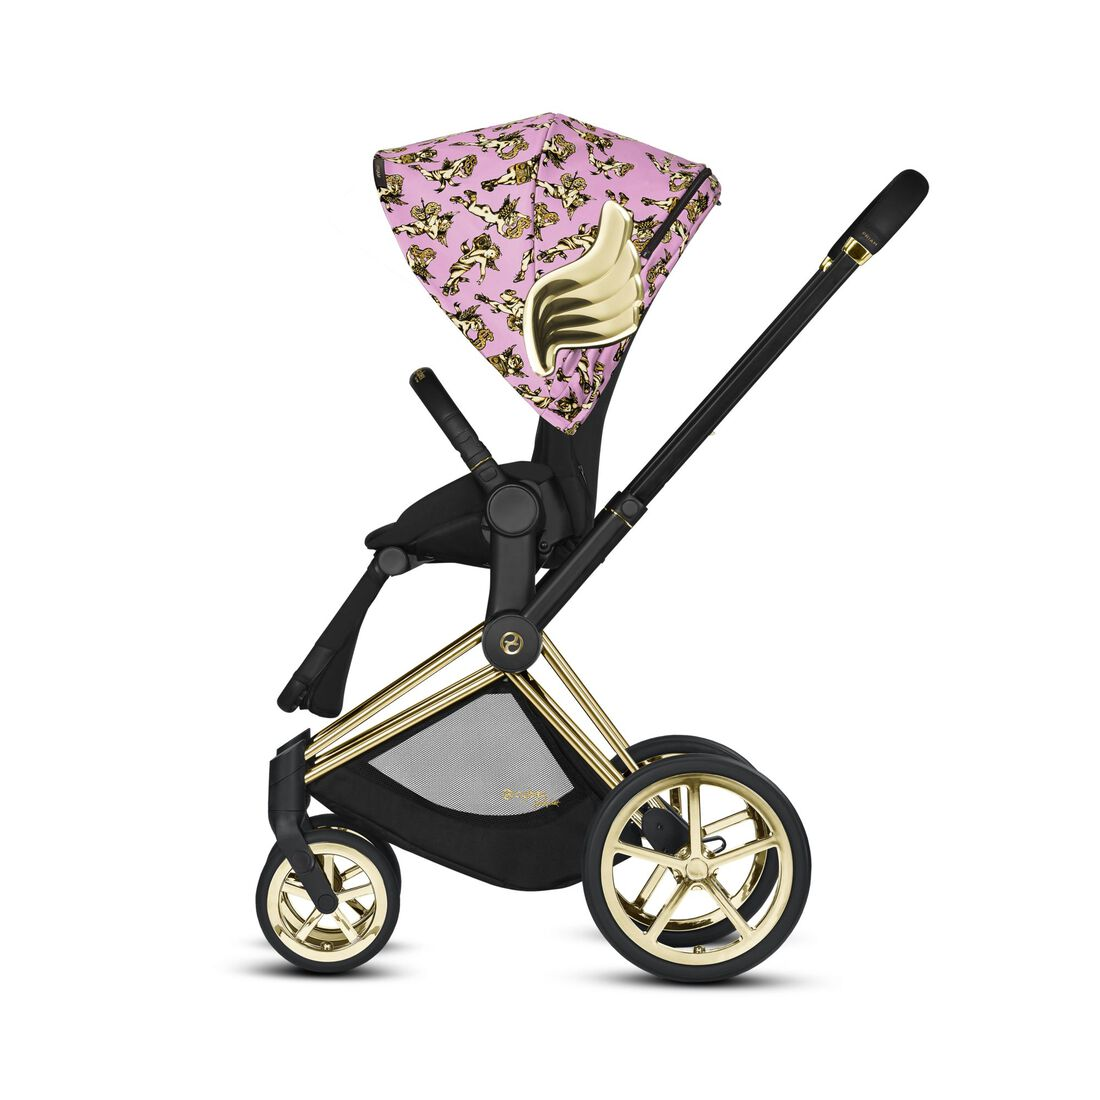 CYBEX Priam Jeremy Scott - Cherubs Pink in Cherubs Pink large Bild 3